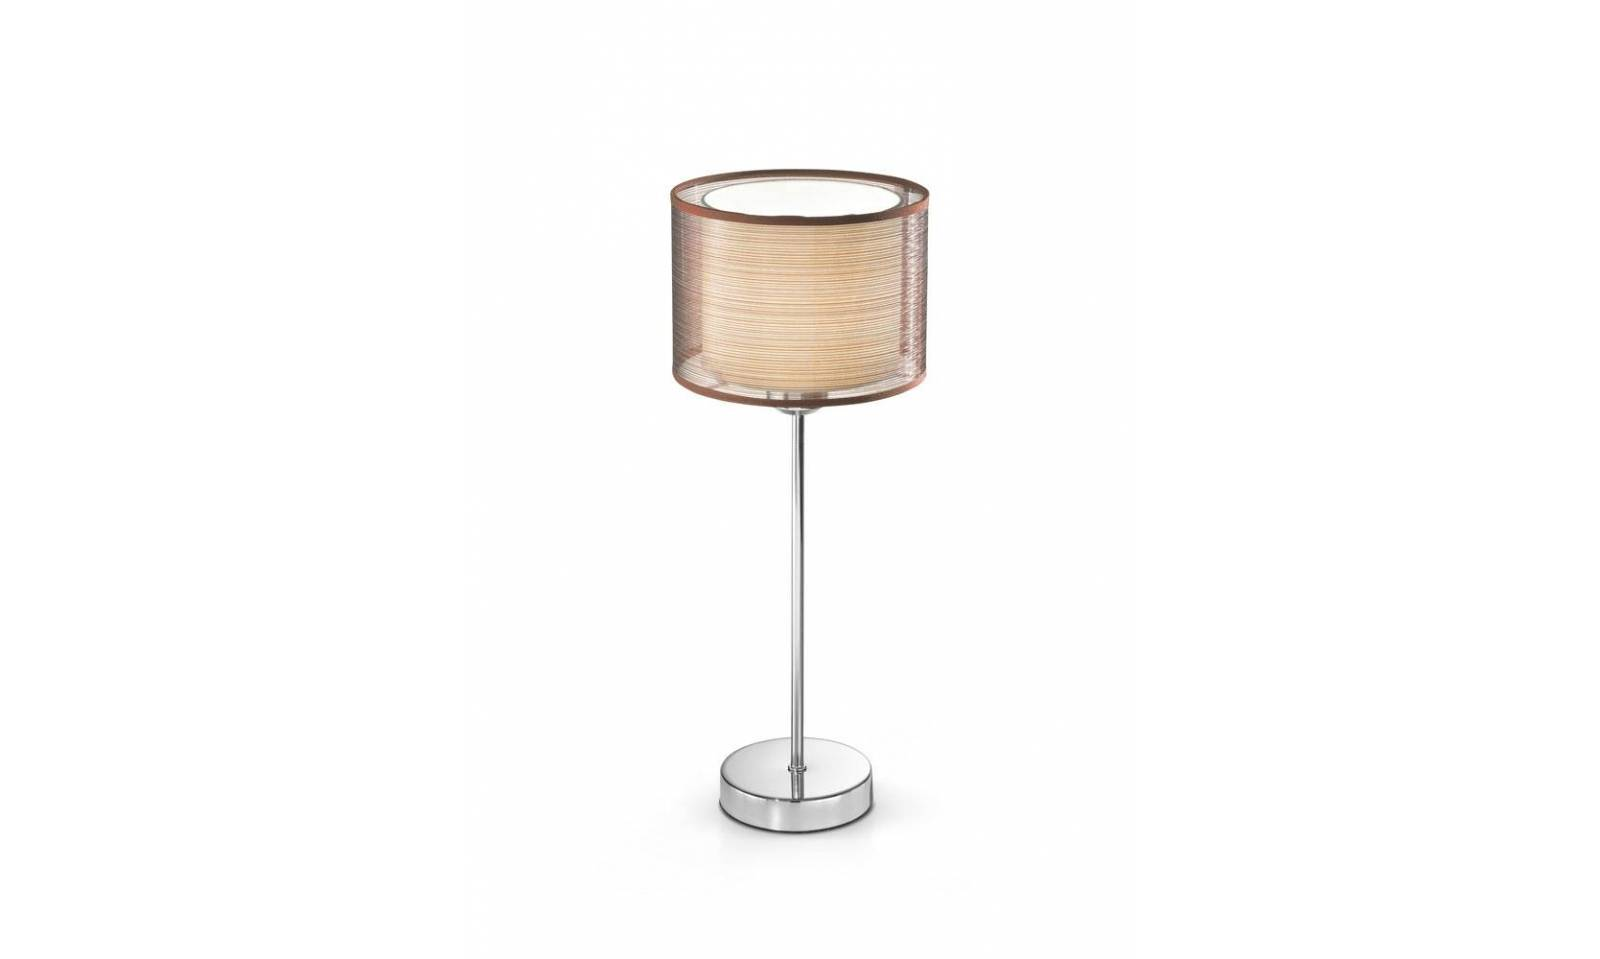 Designer Table Lamps Online Perenz Modern Table Lamp 5974 Ø 18 Cm